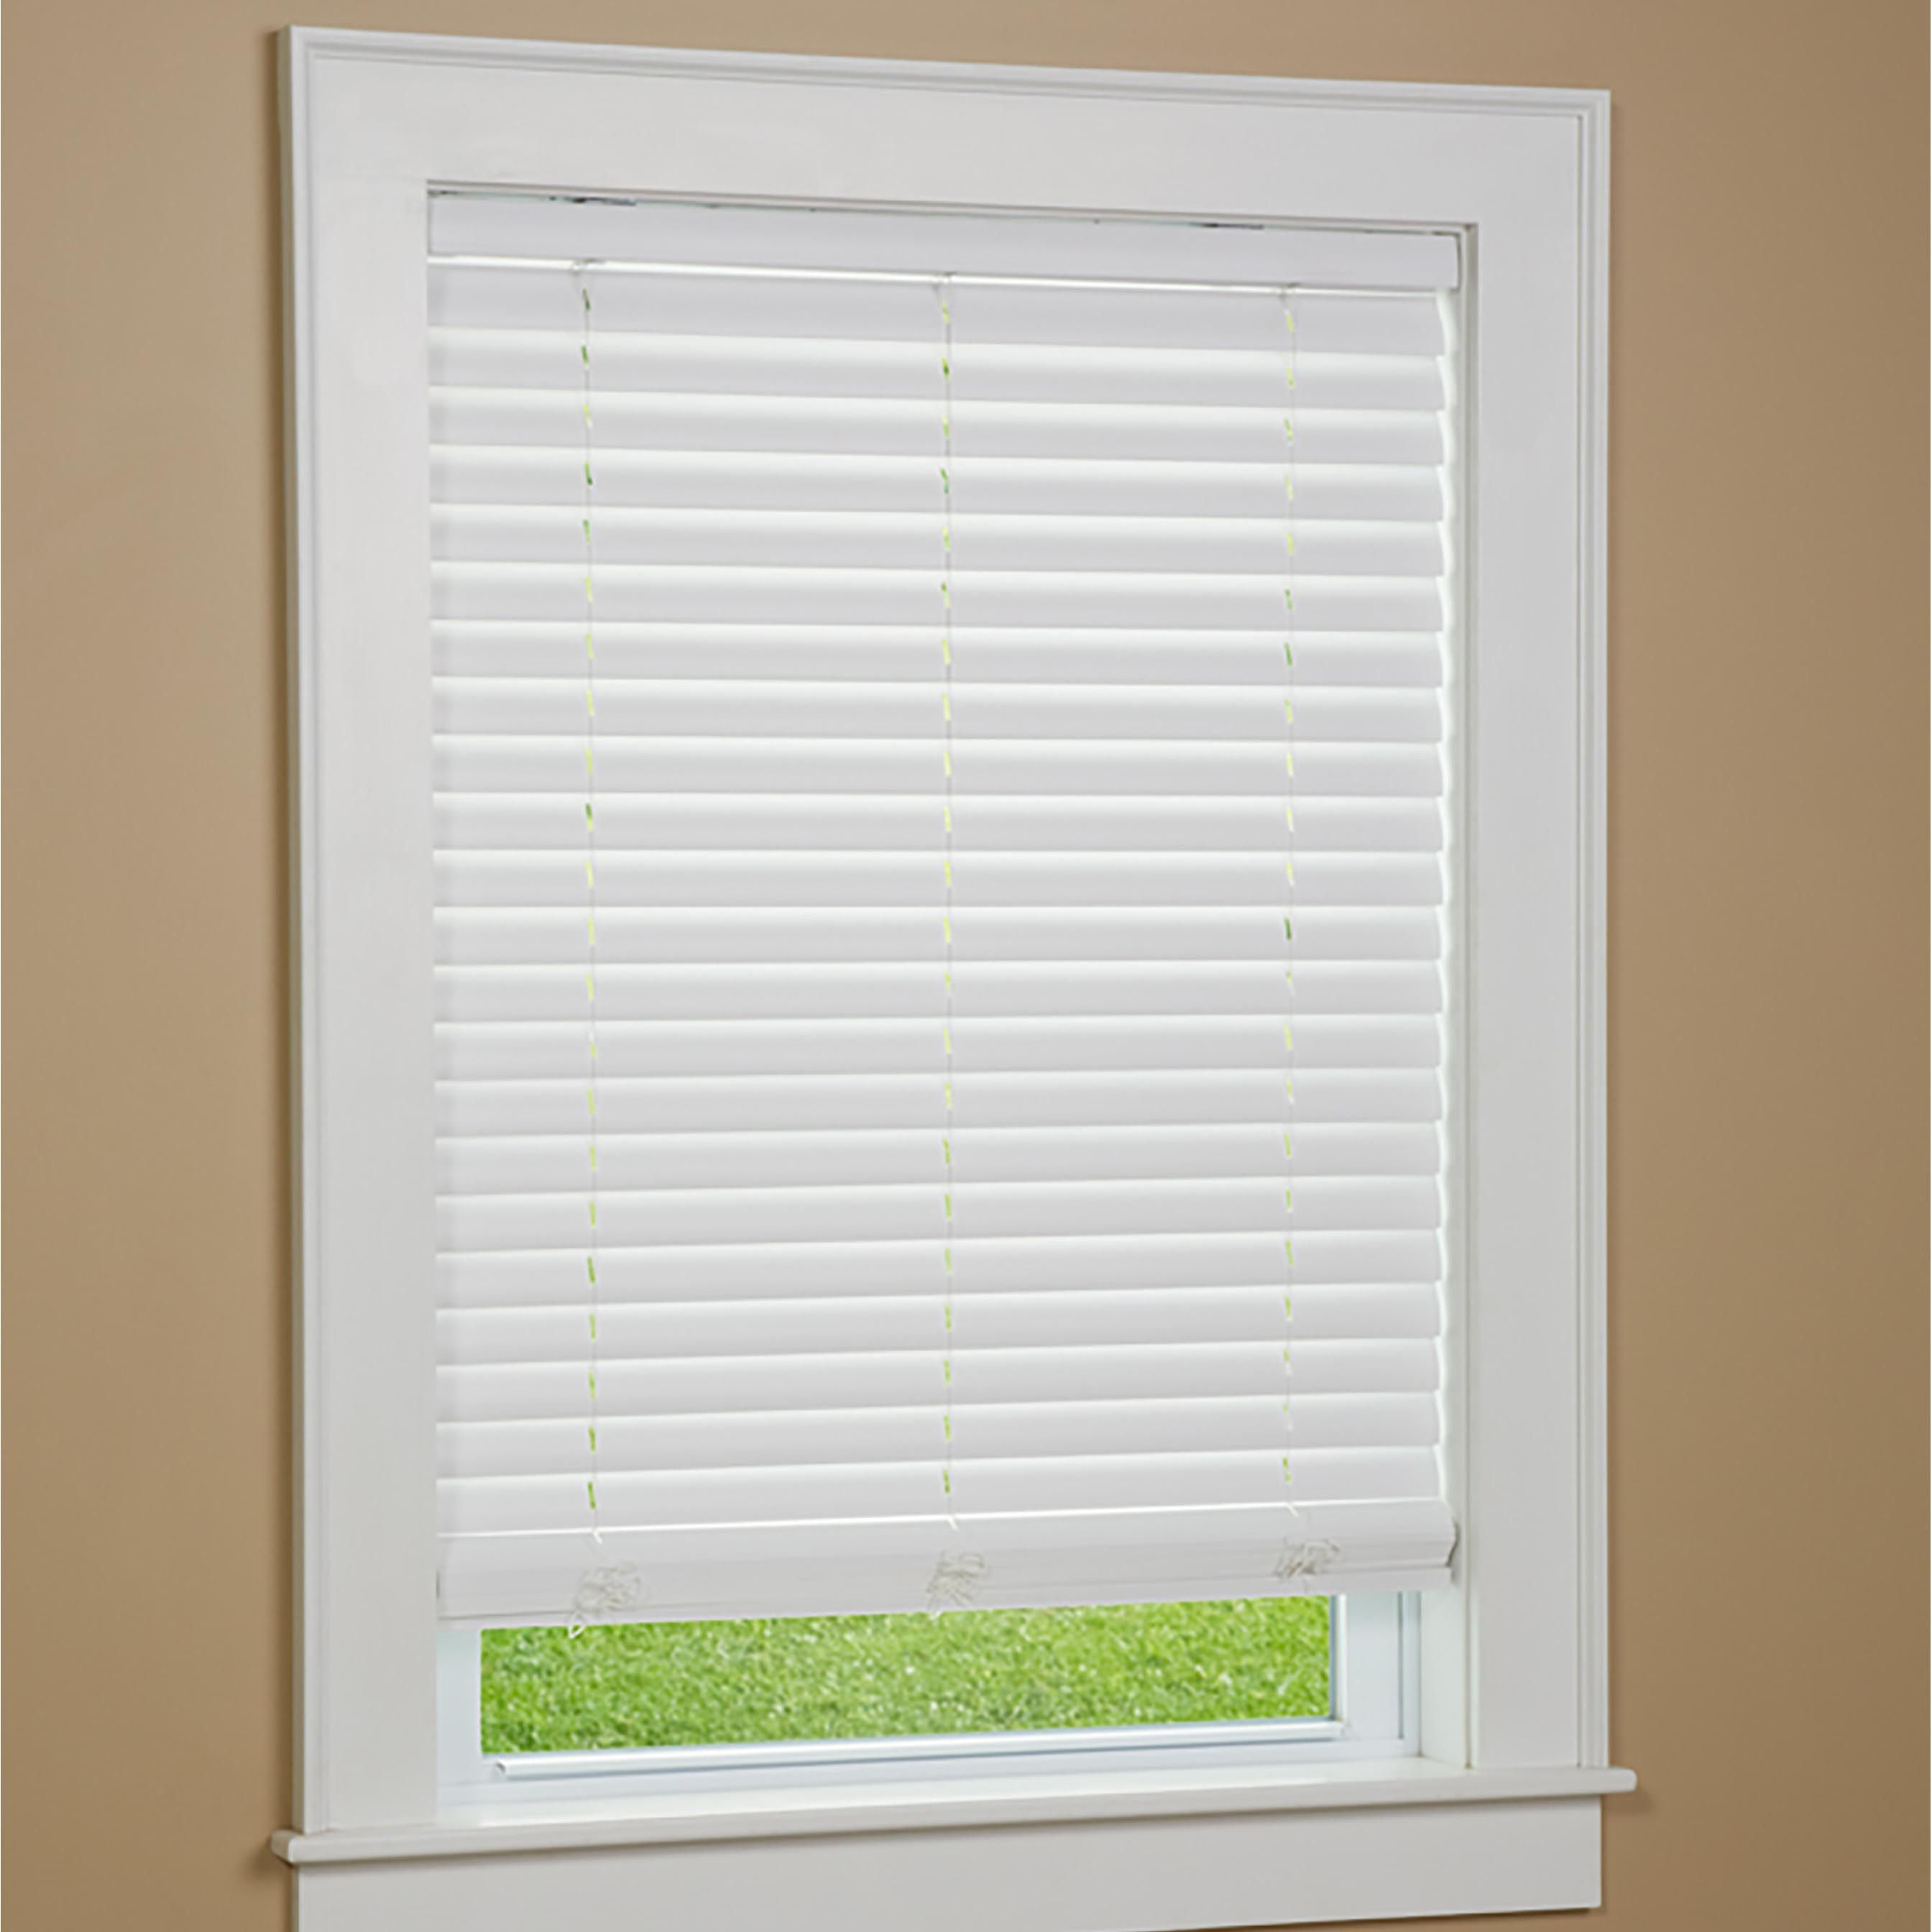 Cordless Lift Blinds Cordless Lift Blinds For More Ideas You Just Have To Click The Link Enjoy